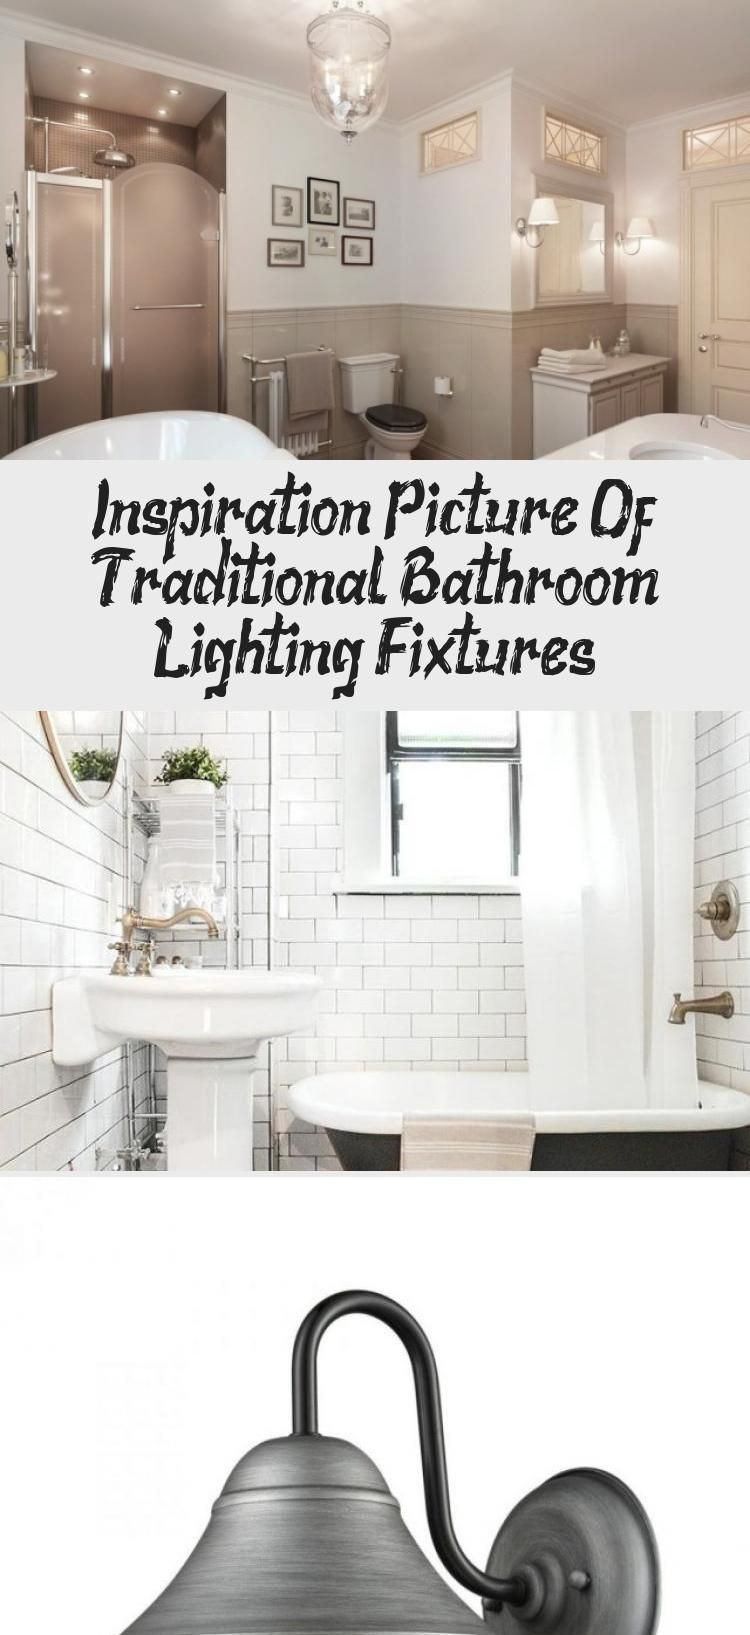 Inspiration Picture Of Traditional Bathroom Lighting Fixtures